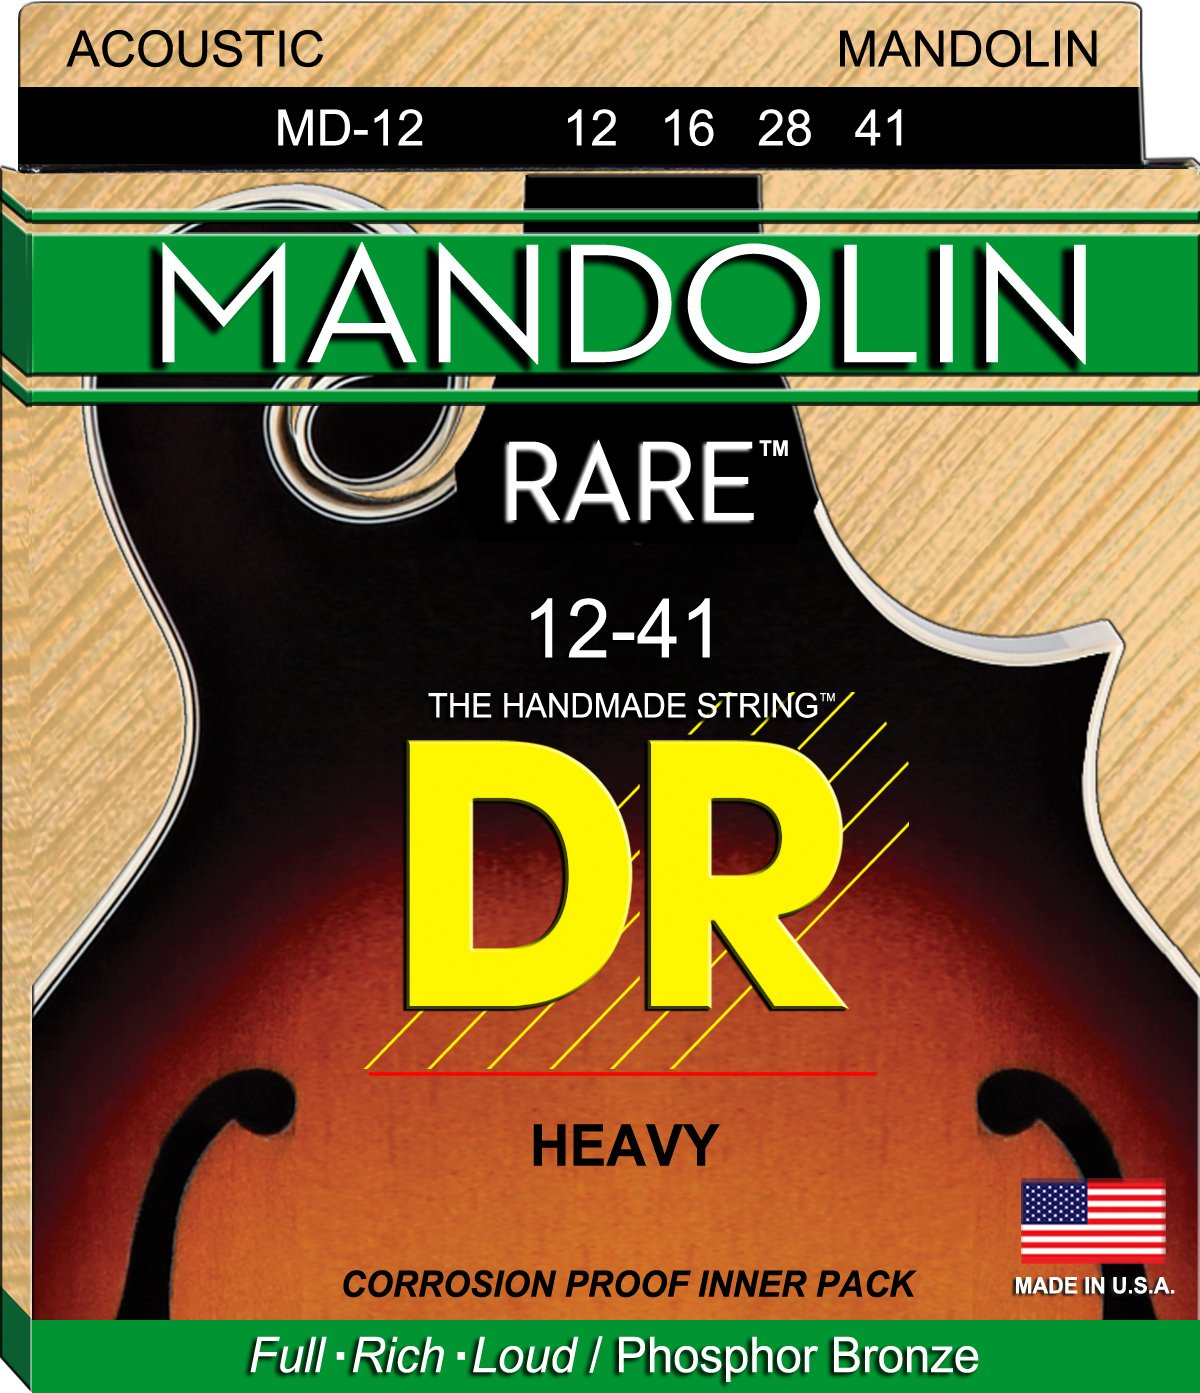 DR Strings Mandolin-12, 16, 28, 41 MD-12